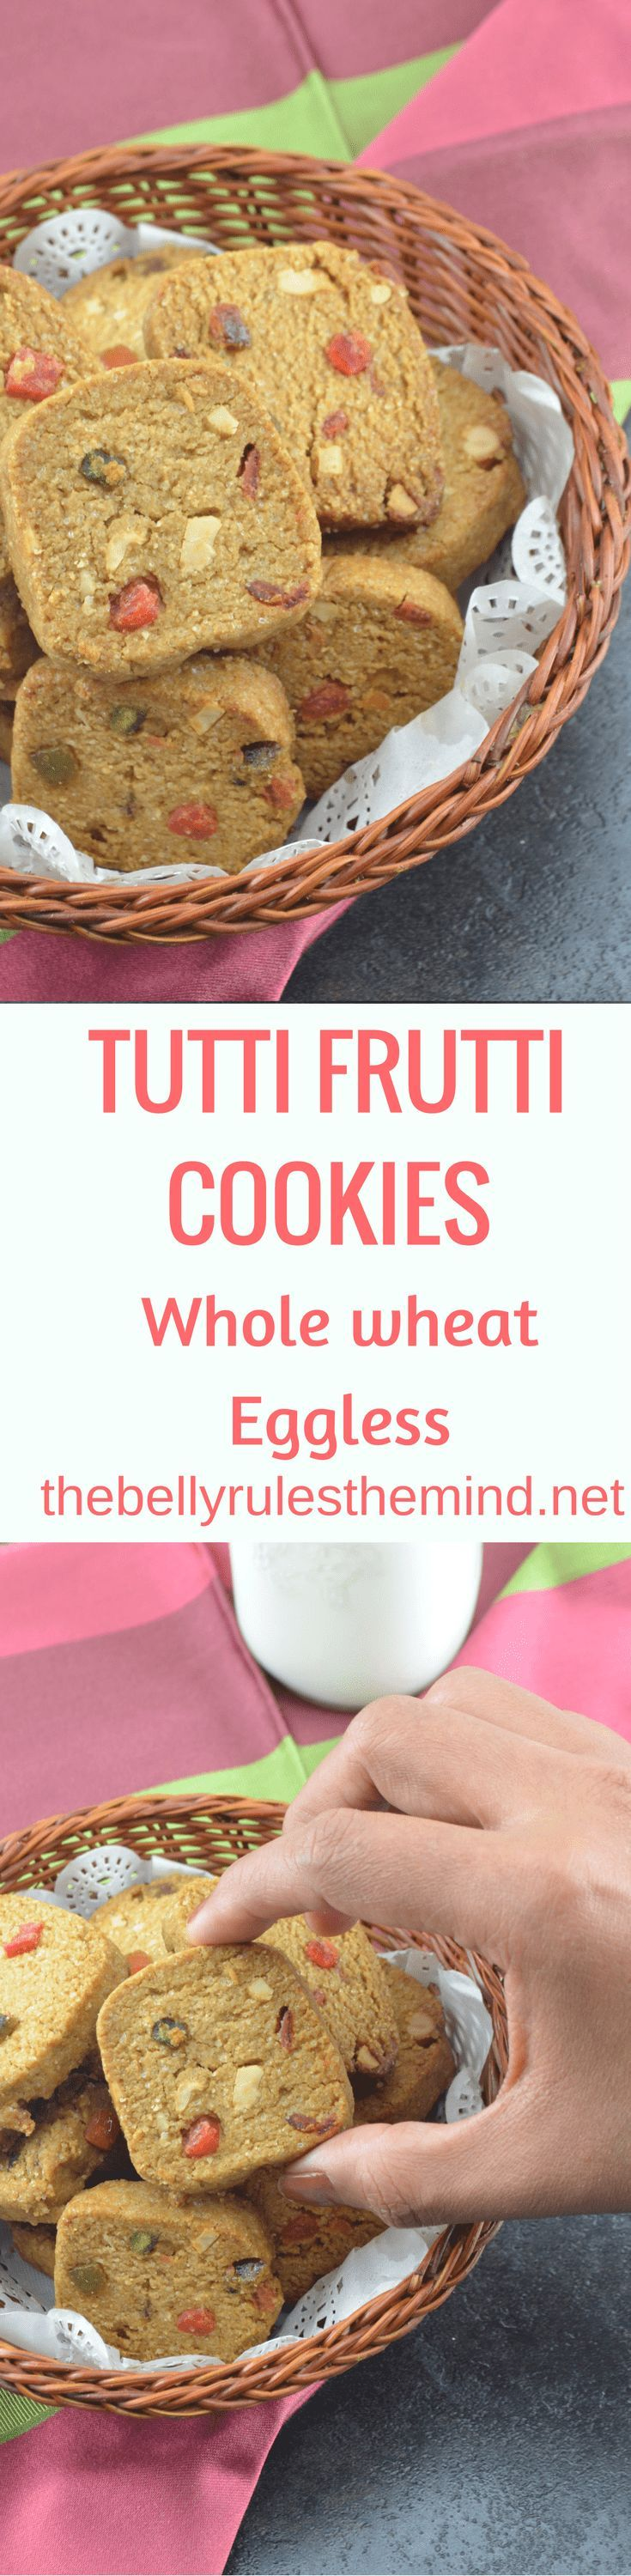 n easy recipe to make home-made delicious irresistible Whole Wheat Tutti Frutti Cookies with ingredients you can trust and control. You need Only 6 things to make the delicious Whole wheat Tutti Frutti cookie.. @Dbellyrulesdmind